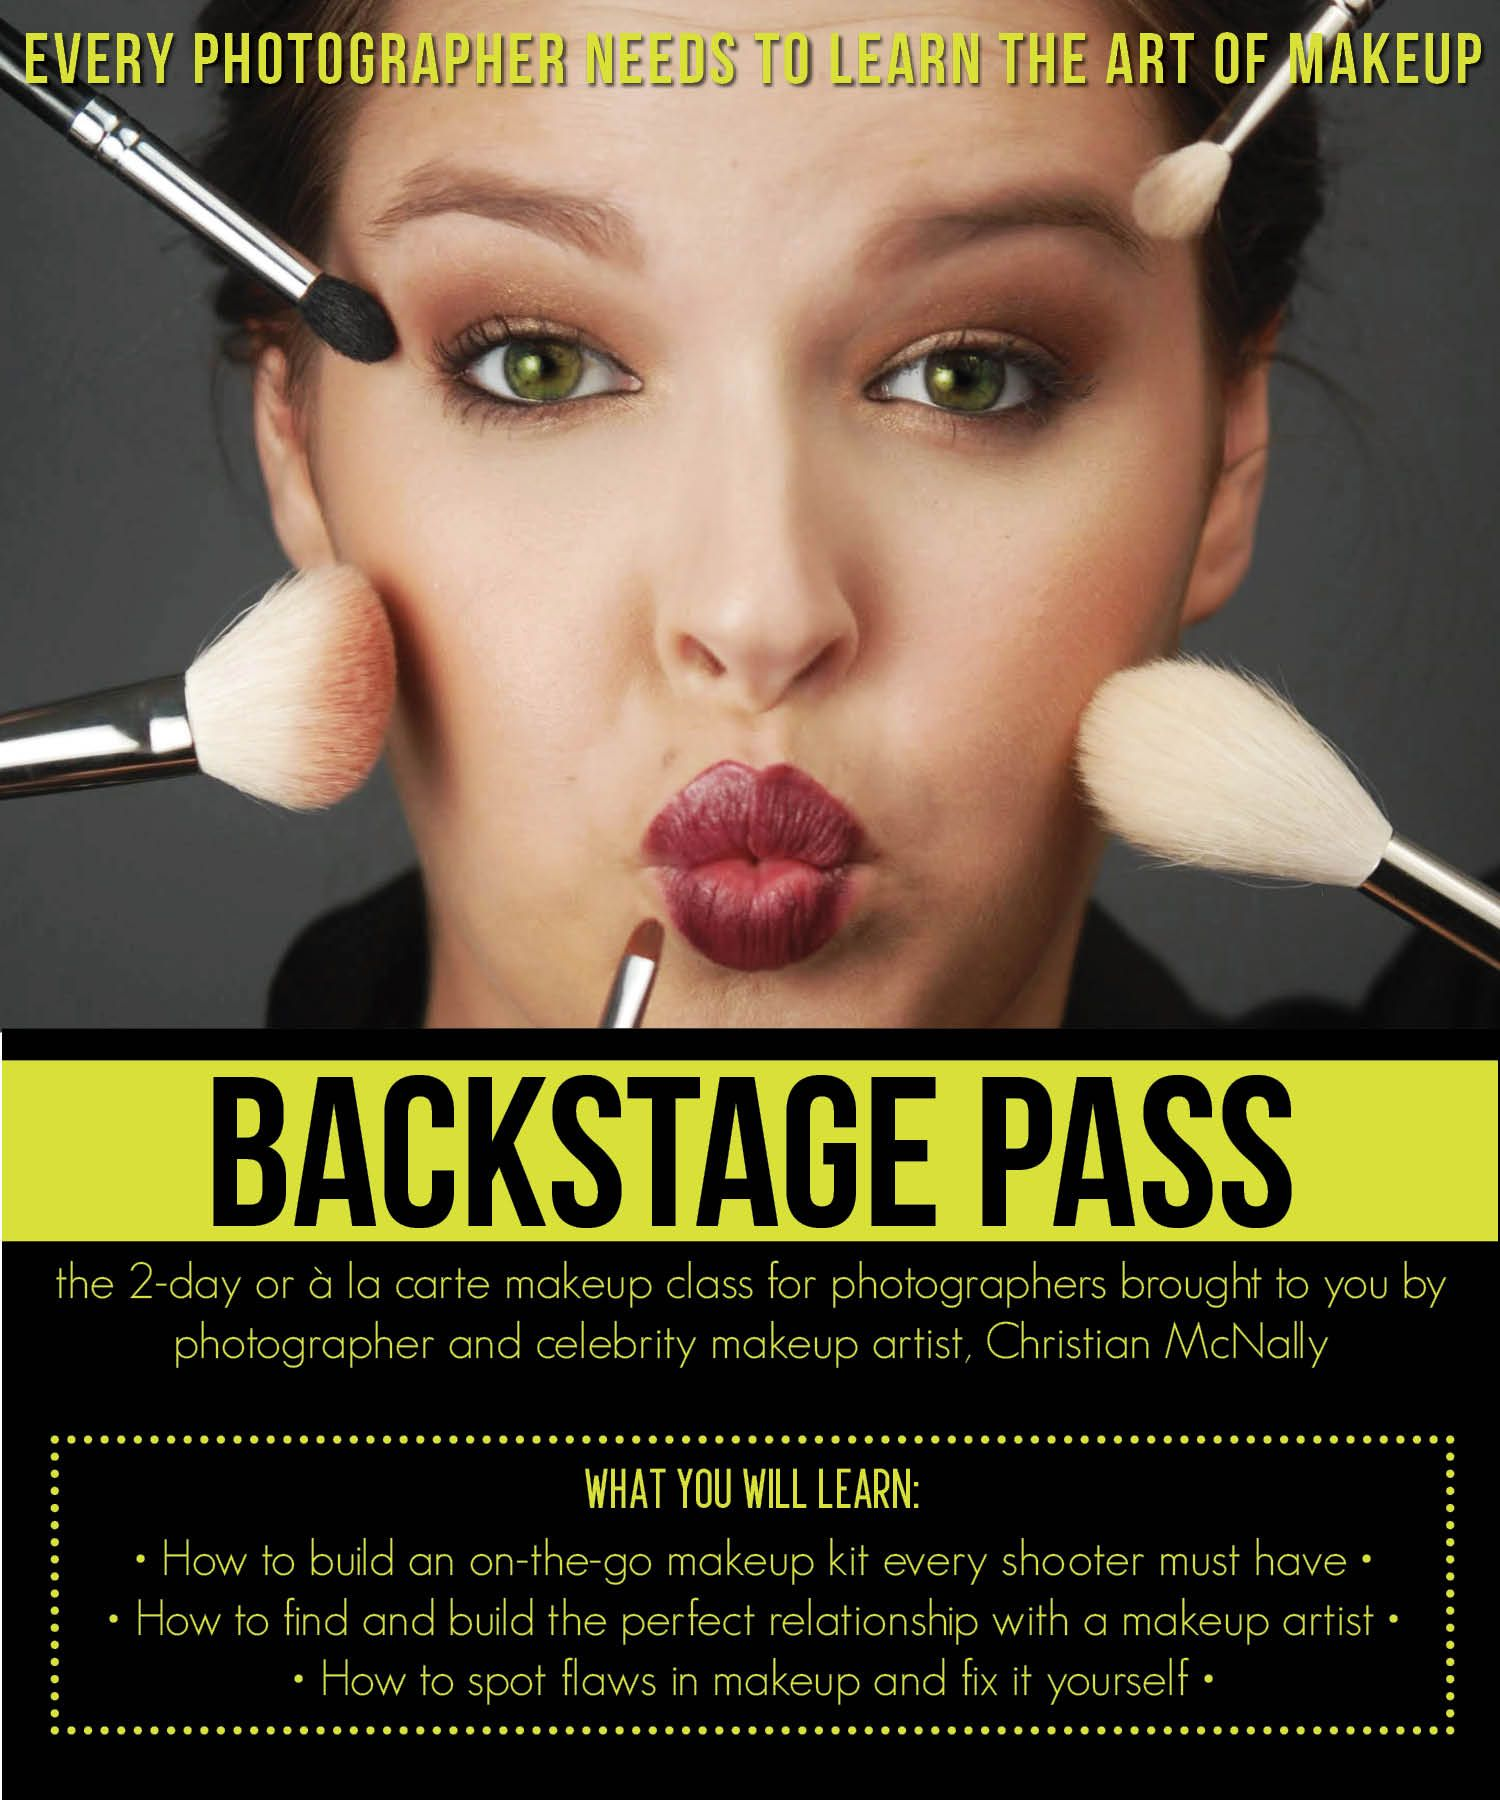 Wpa Is Hosting A 1 Or 2 Day Hands On Makeup Seminar For Photographers Equip Yourself With The Power Of Knowledge Celebrity Makeup Artist Makeup Class Makeup